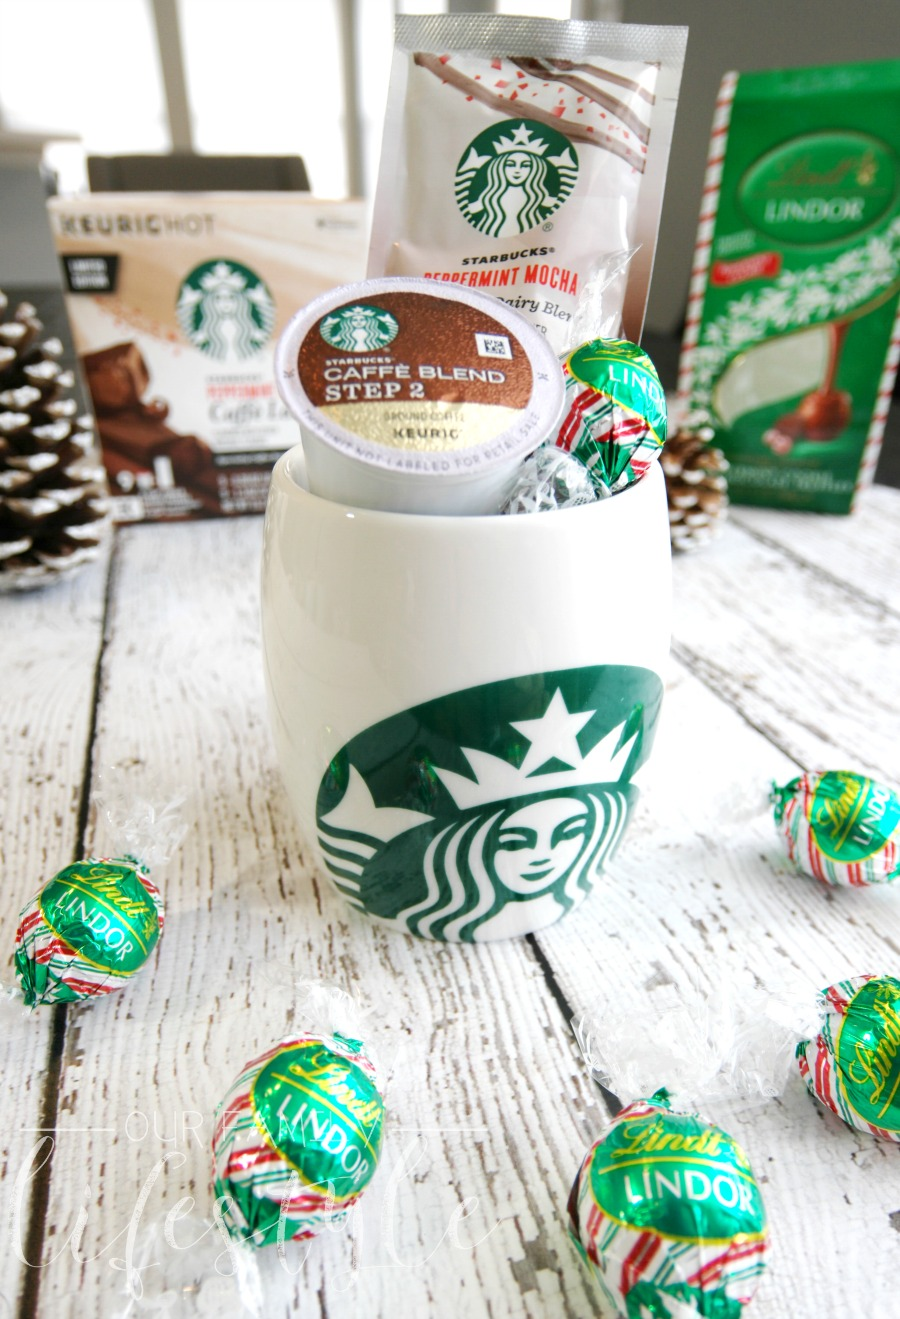 Starbucks Peppermint Mocha Caffe Latte and Lindt LINDOR Peppermint Cookie Milk Chocolate Truffles